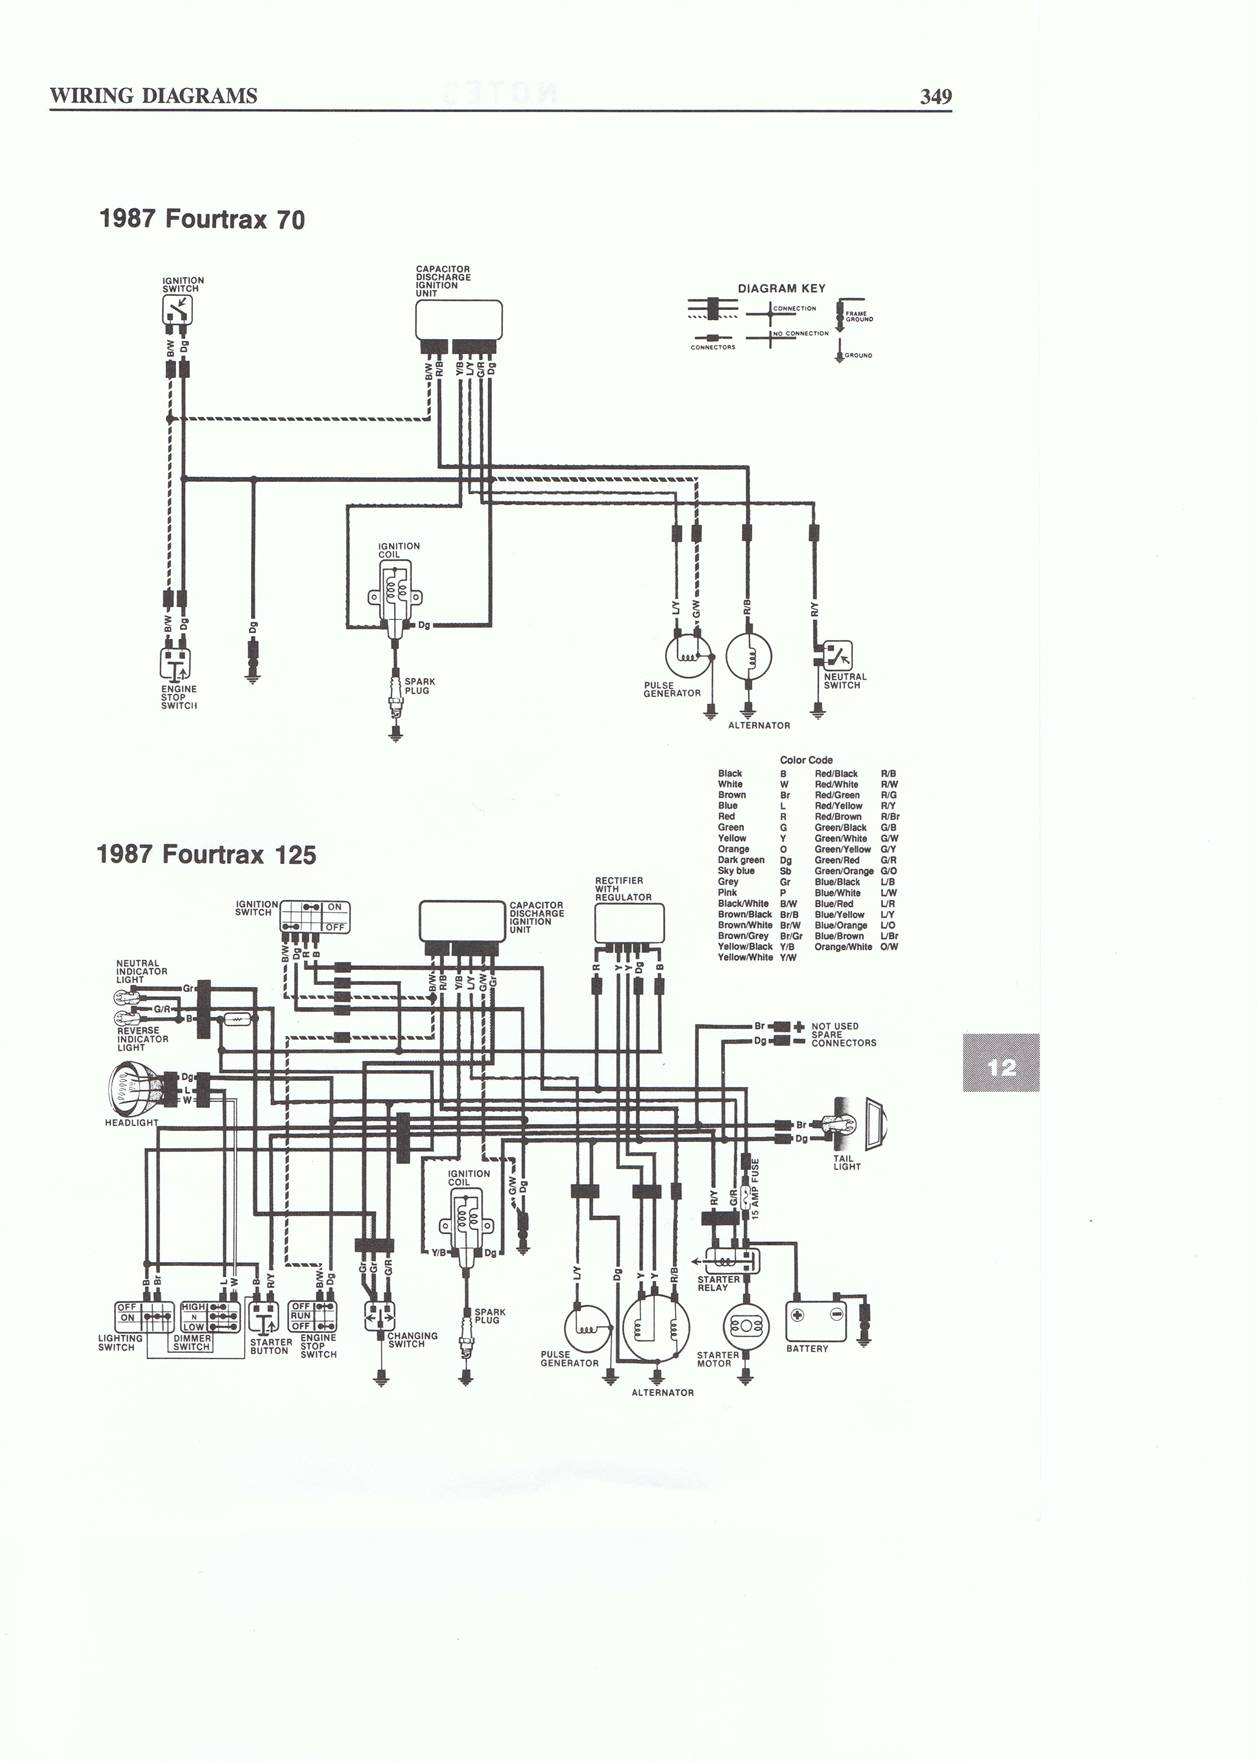 gy6 engine wiring diagram?t=1398725710 gy6 engine wiring diagram 157qmj wiring diagram at highcare.asia